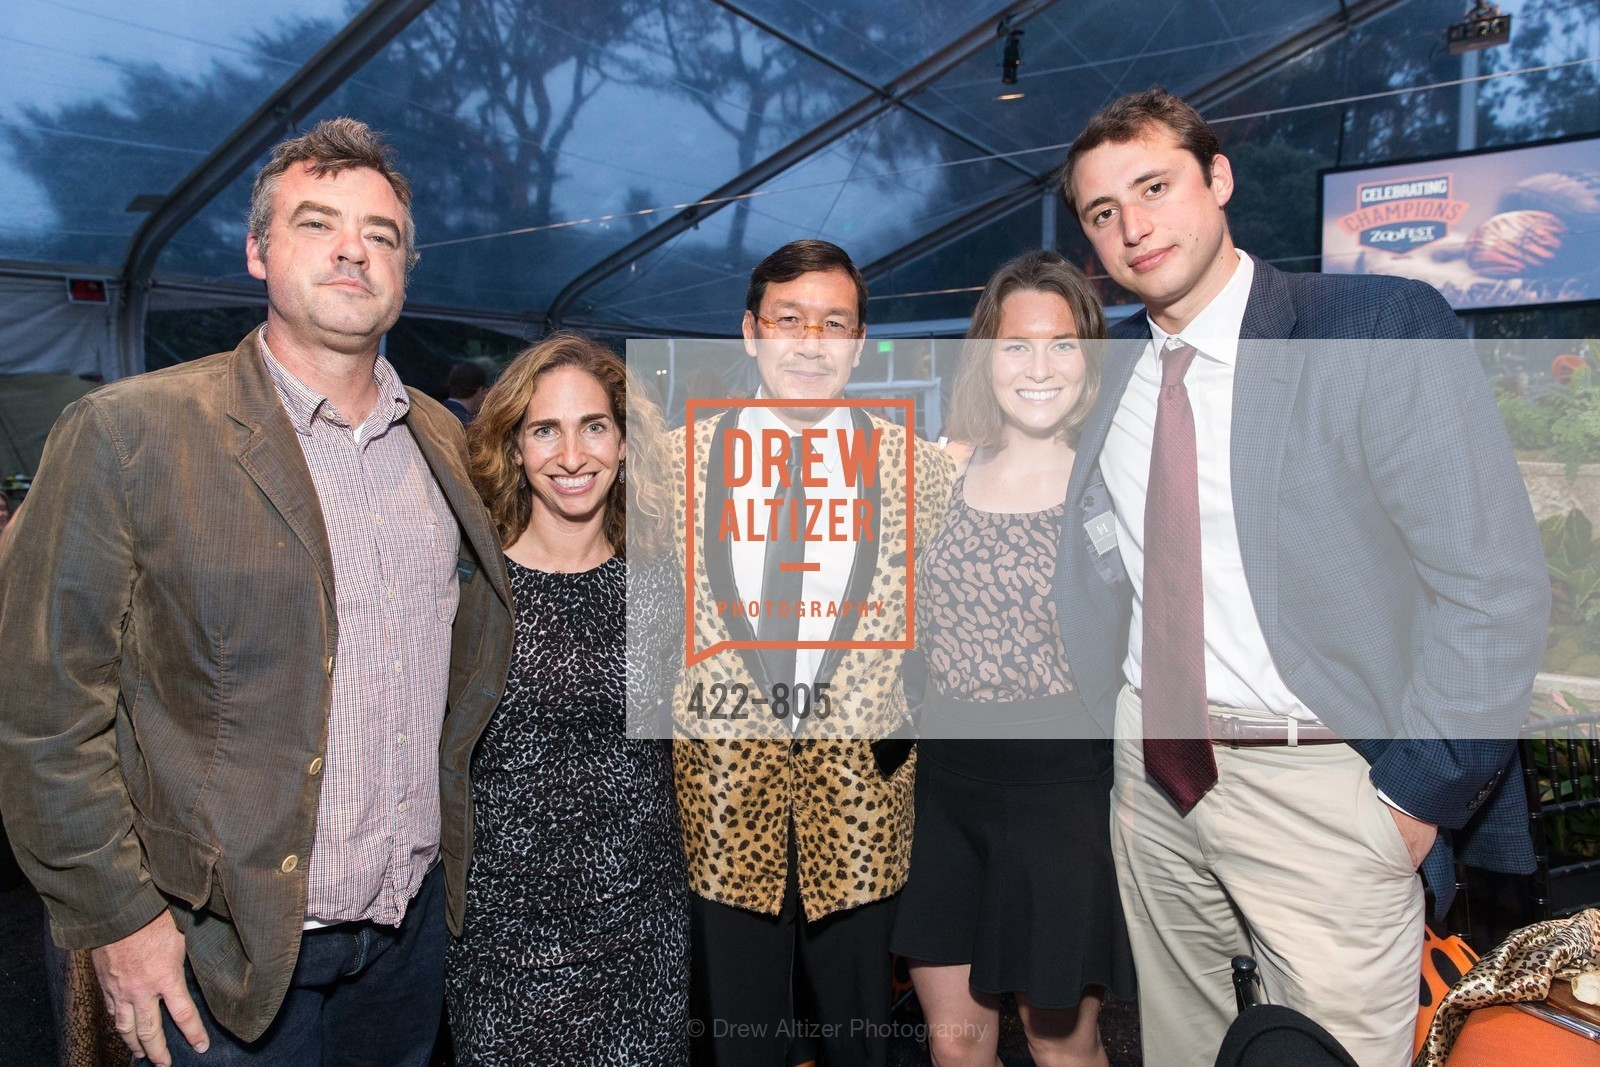 John Oram, Stacey Rubin, Timothy Wu, Brittany Powell, Sam Cartmell, ZOOFEST 2015, US, April 26th, 2015,Drew Altizer, Drew Altizer Photography, full-service agency, private events, San Francisco photographer, photographer california